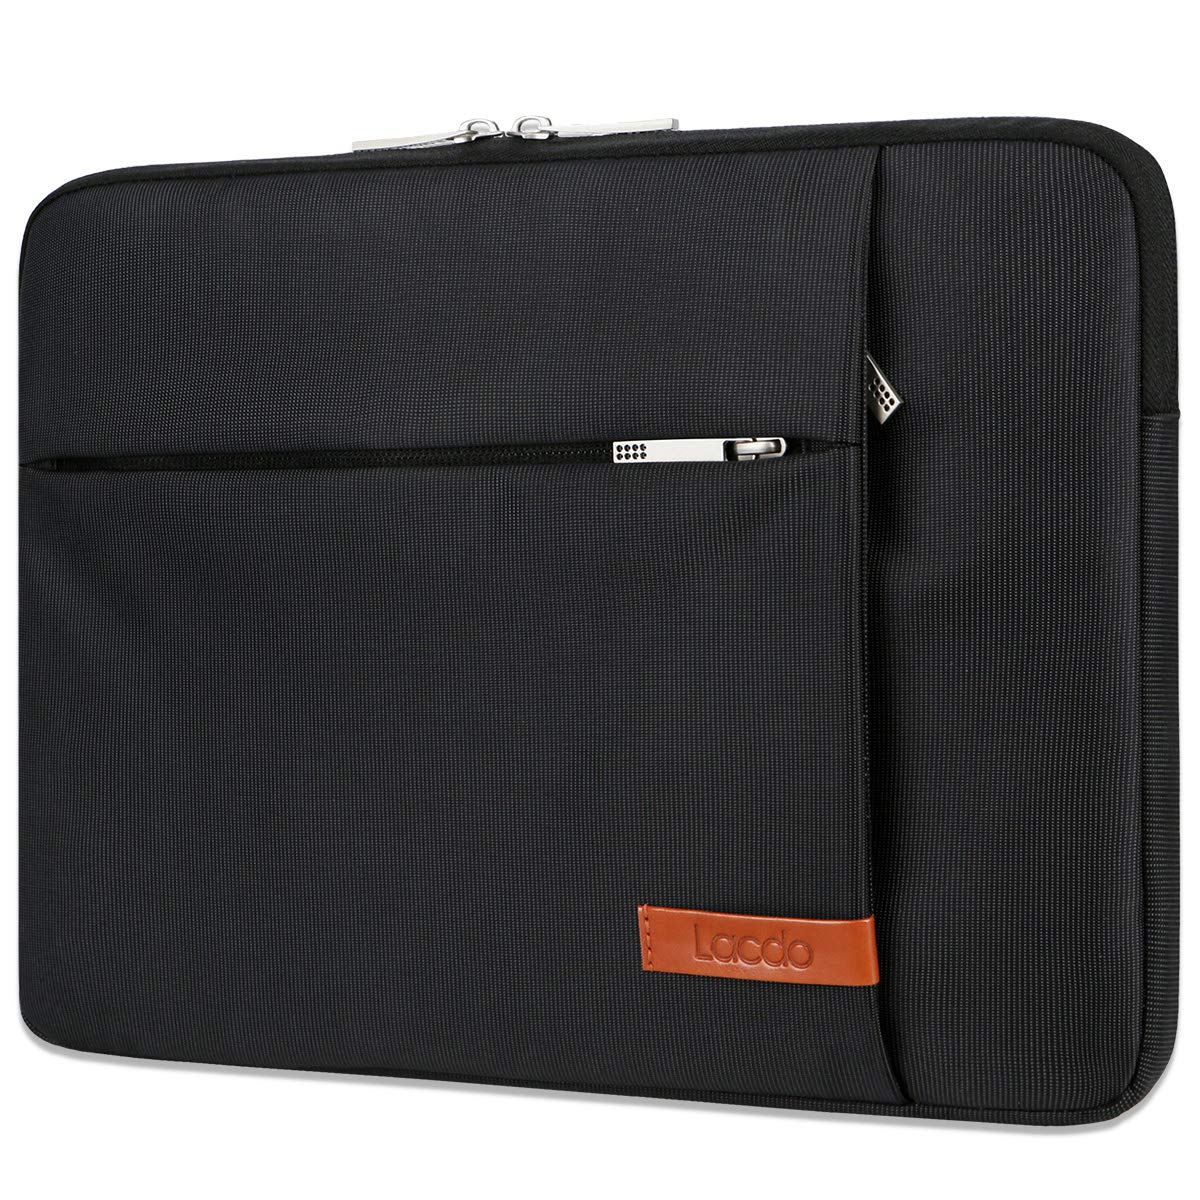 Lacdo 13.3 Inch Laptop Sleeve Case for Old 13 Inch MacBook Pro Retina 2012-2015, Old MacBook Air 2010-2017 / Surface Book 3 2, HP Envy 13 ASUS ZenBook 13 Acer Chromebook Bag, Water Resistant, Black